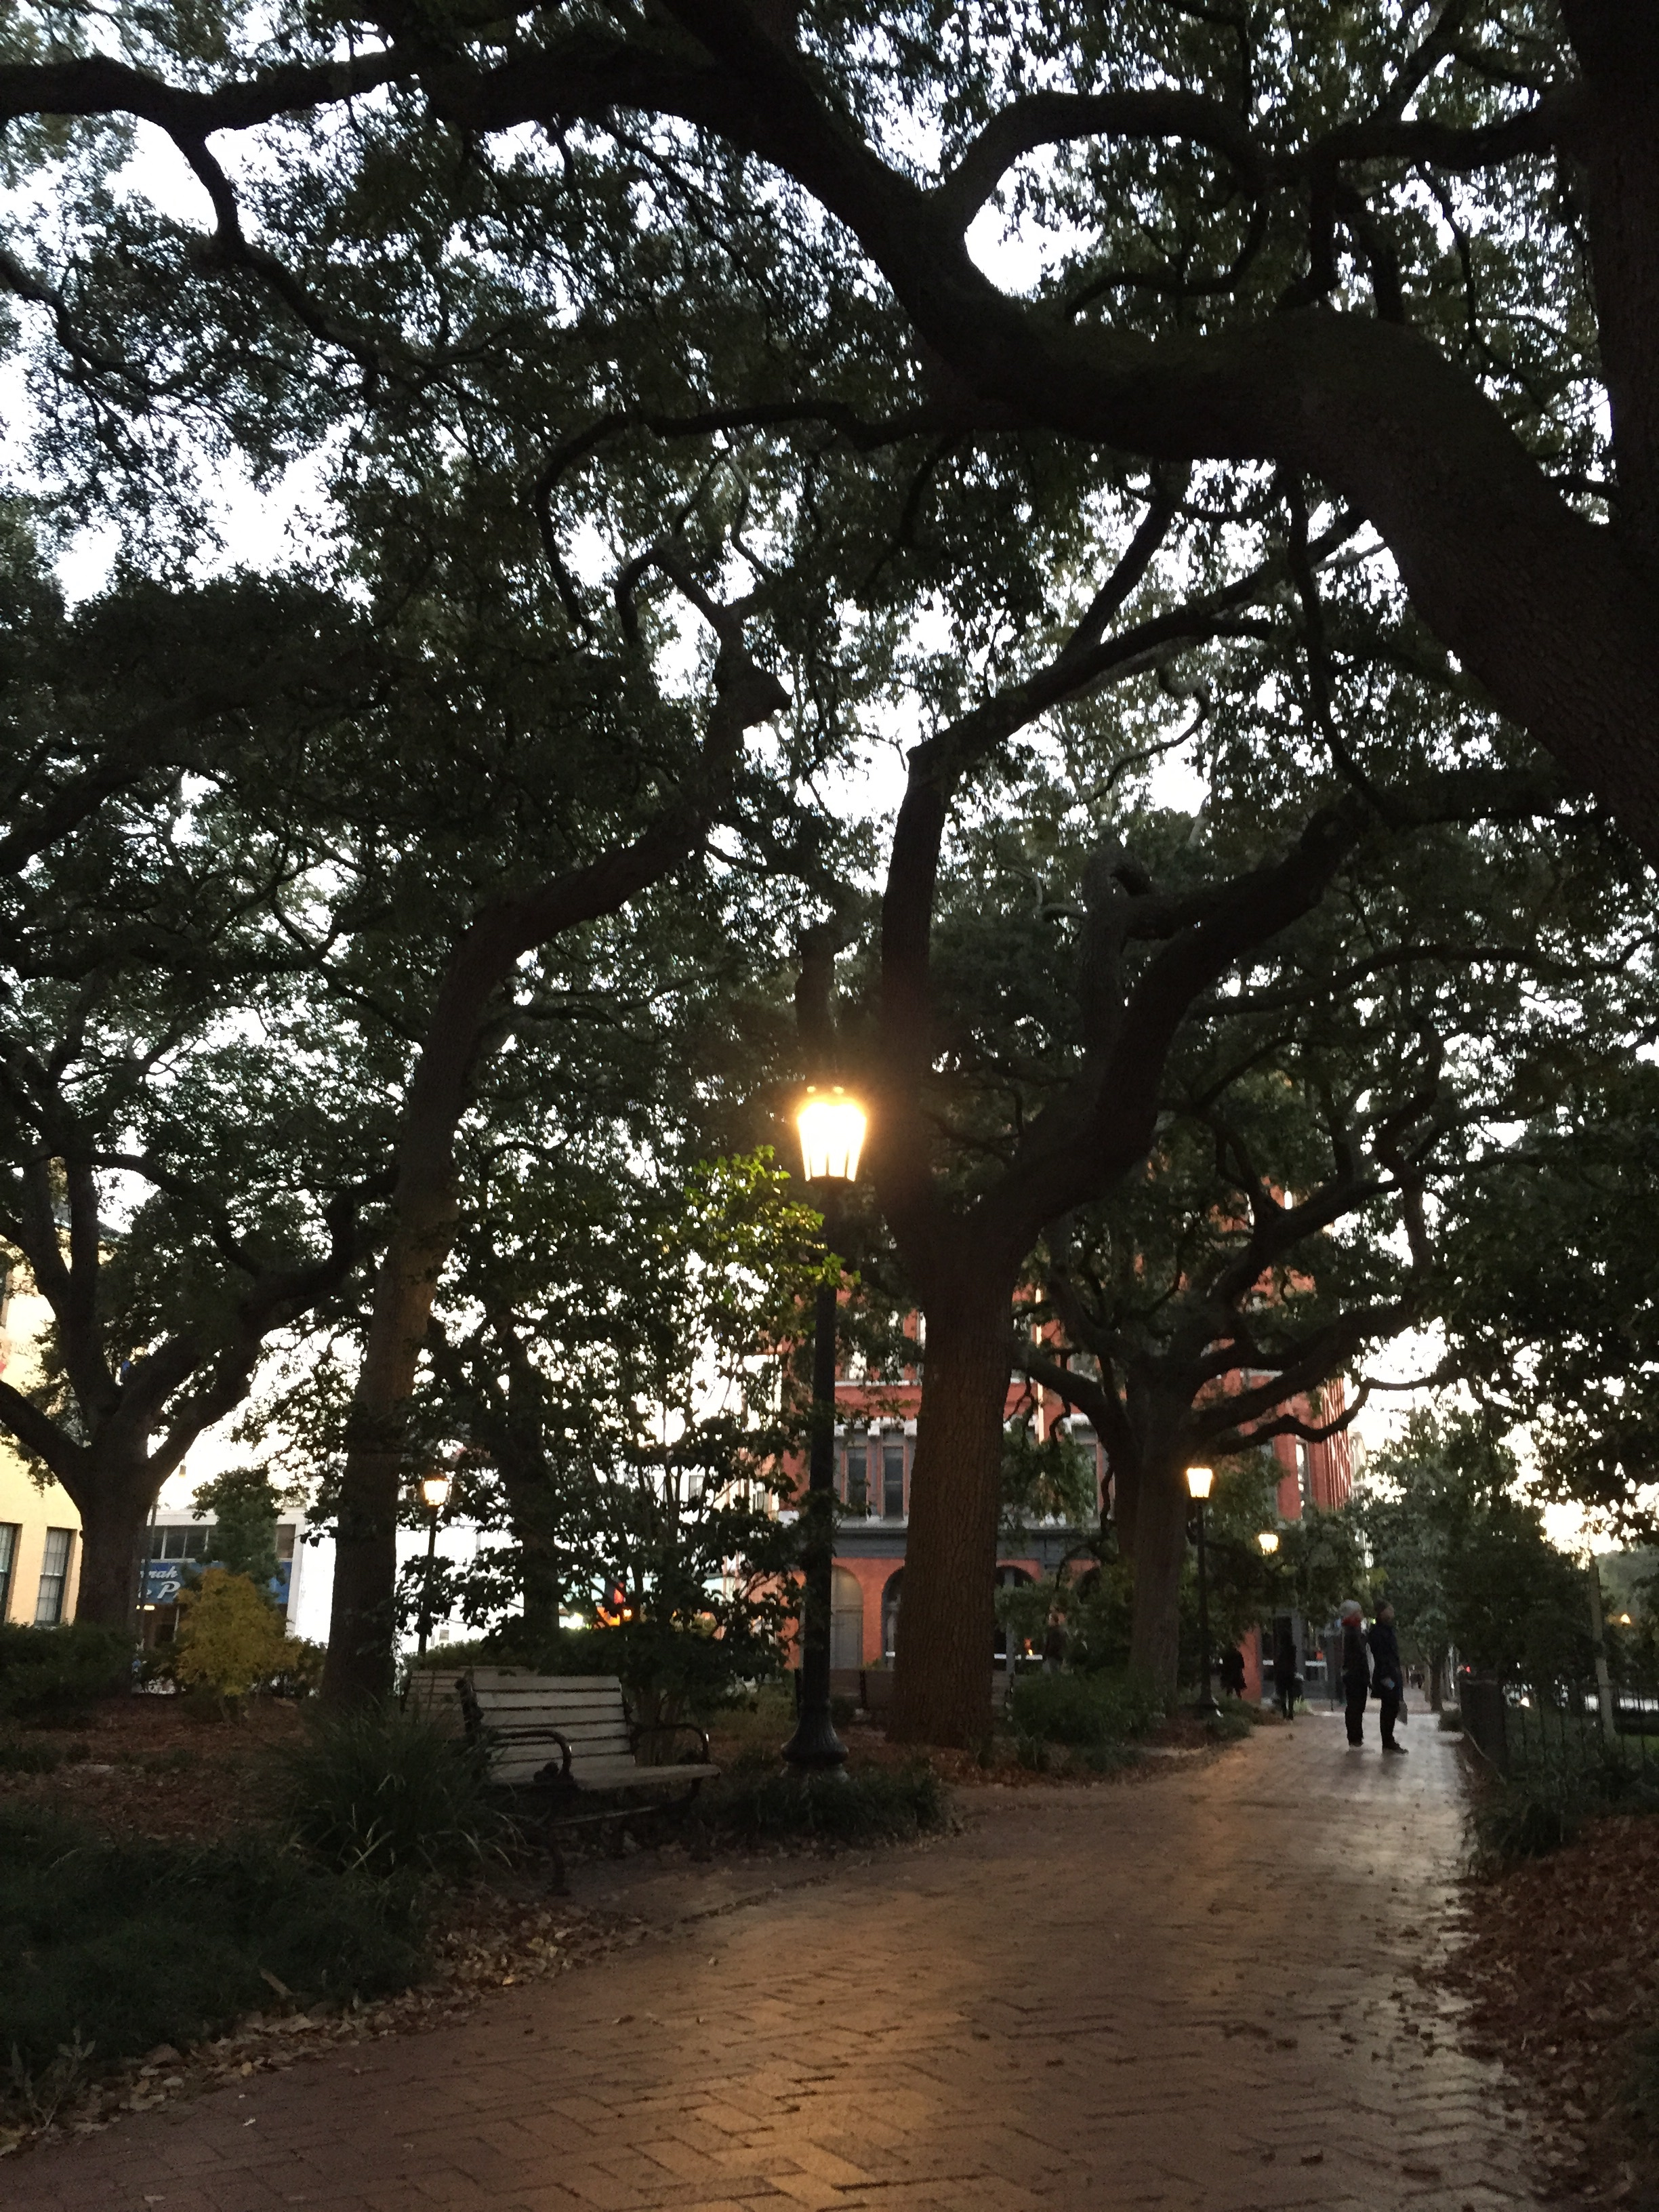 Savannah City Walk